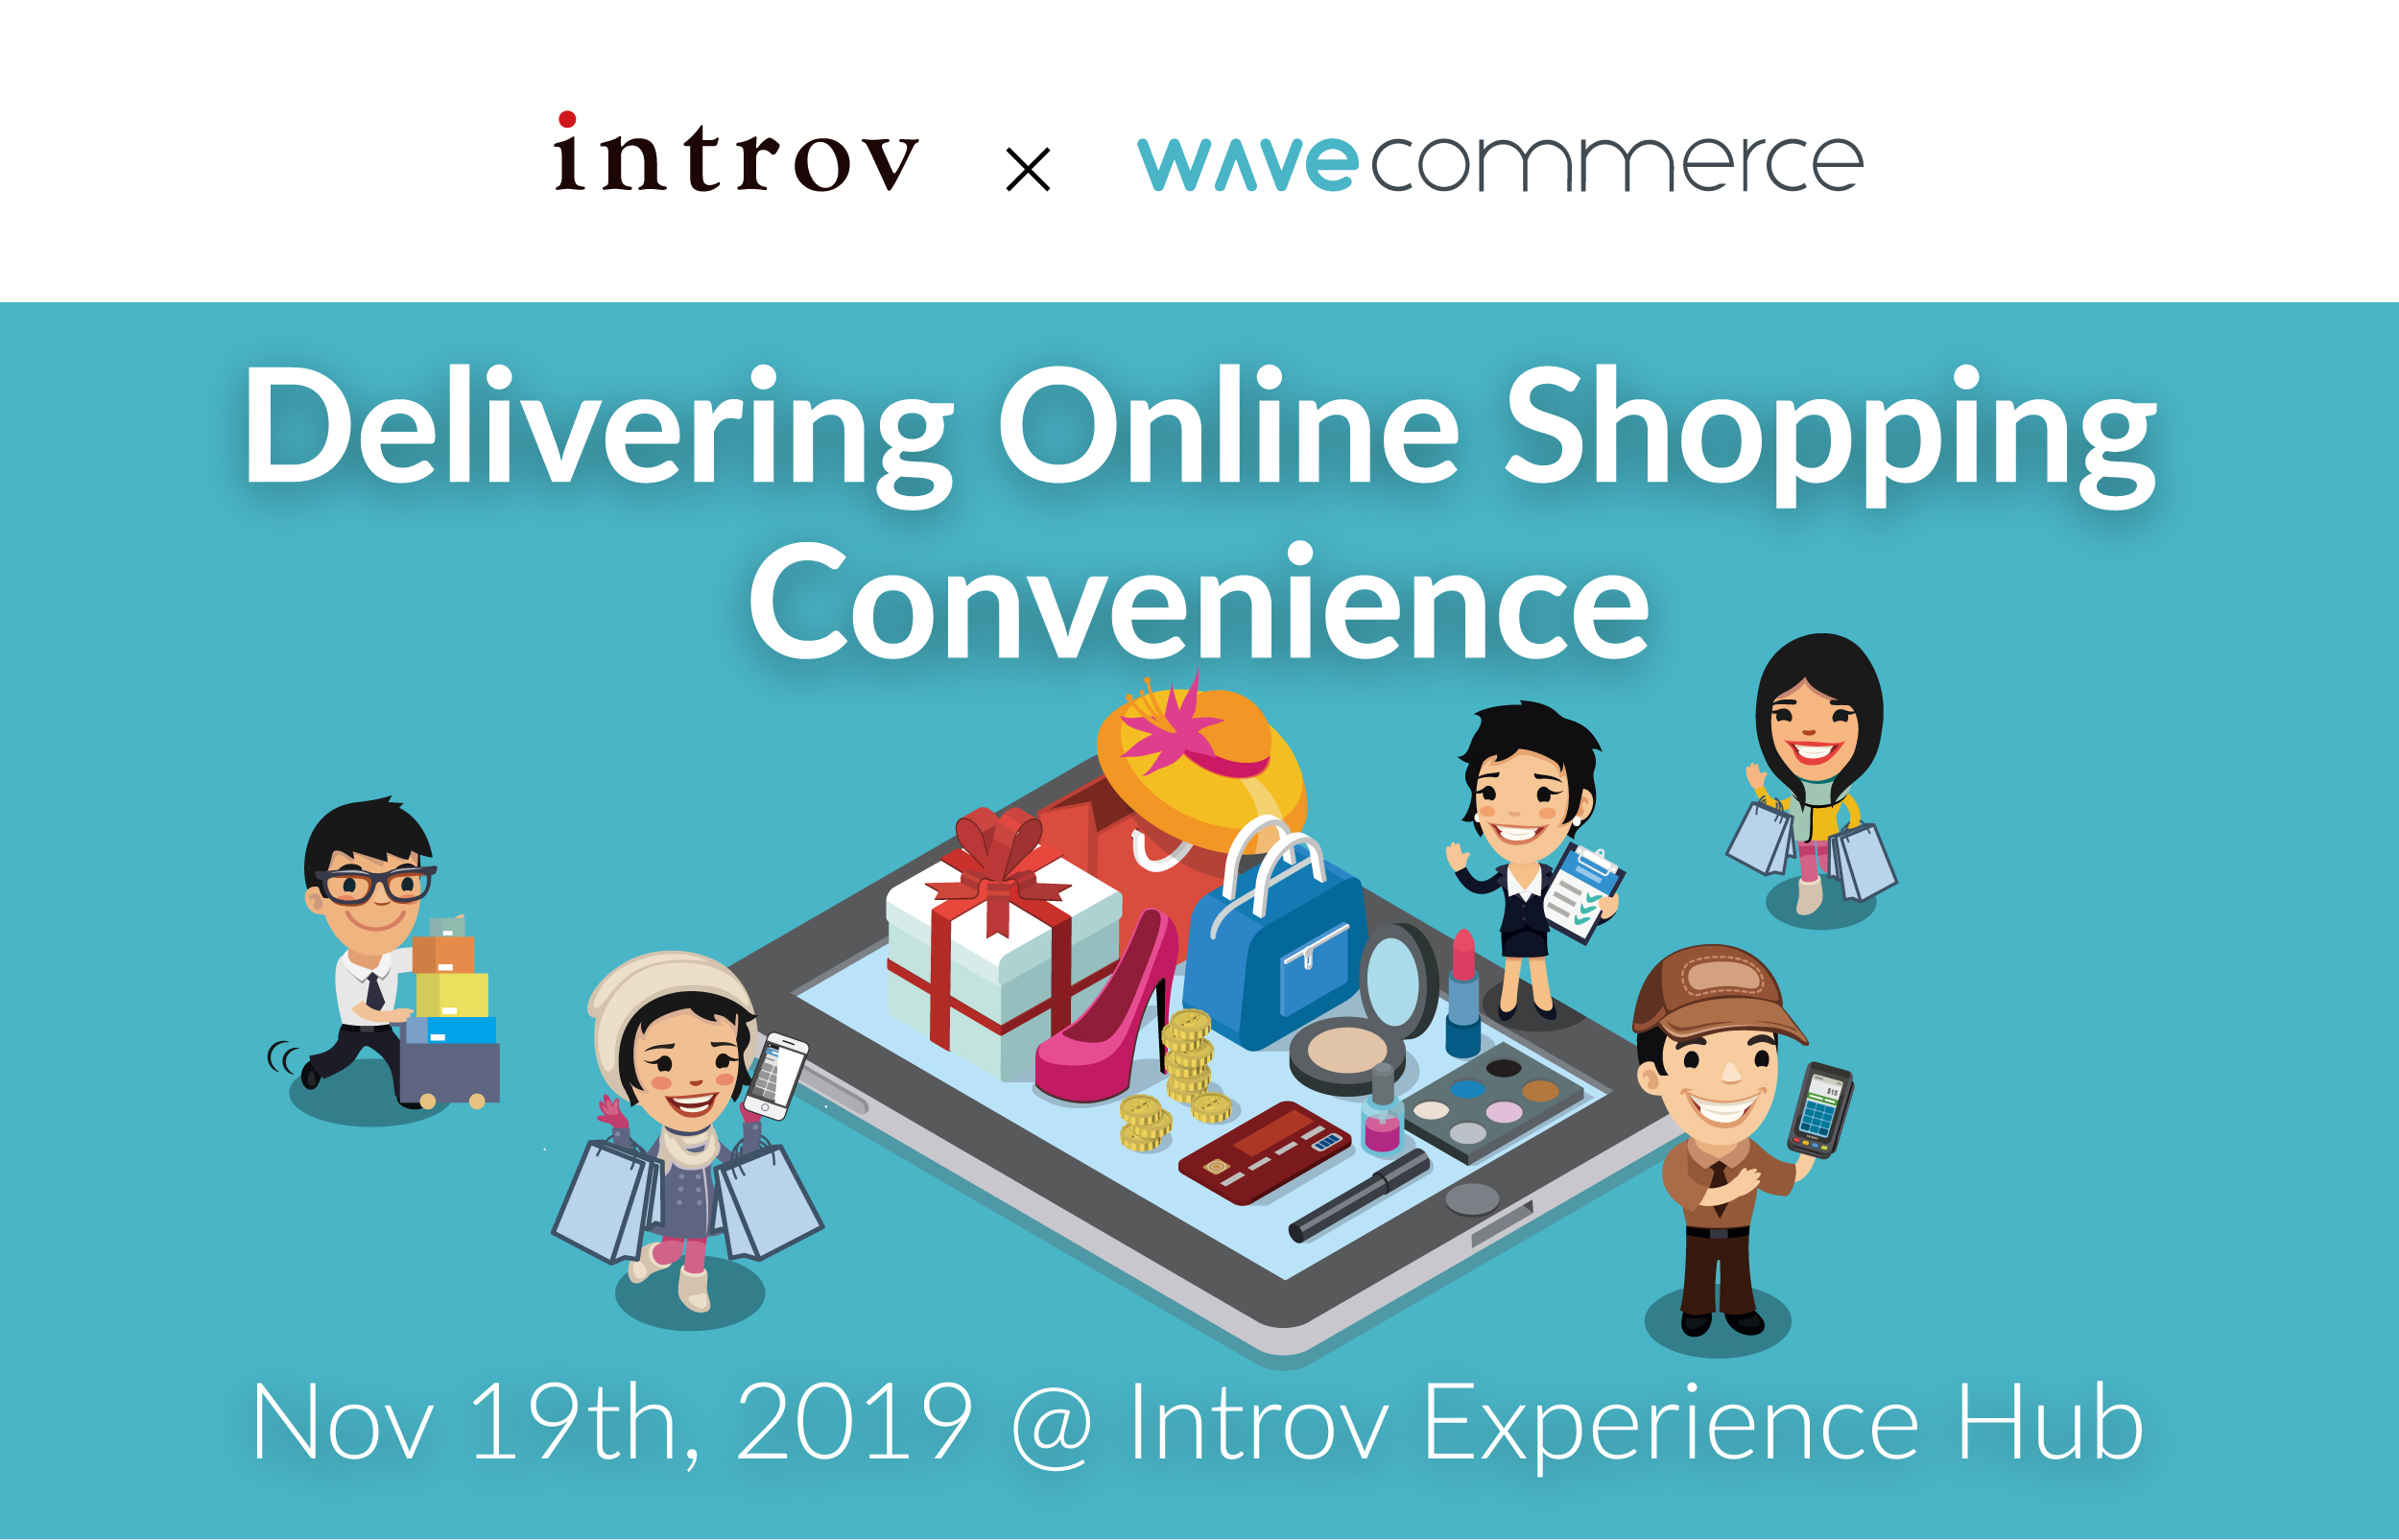 Introv x Wave Commerce Workshop: Delivering Online Shopping Convenience (November 19th, 2019)